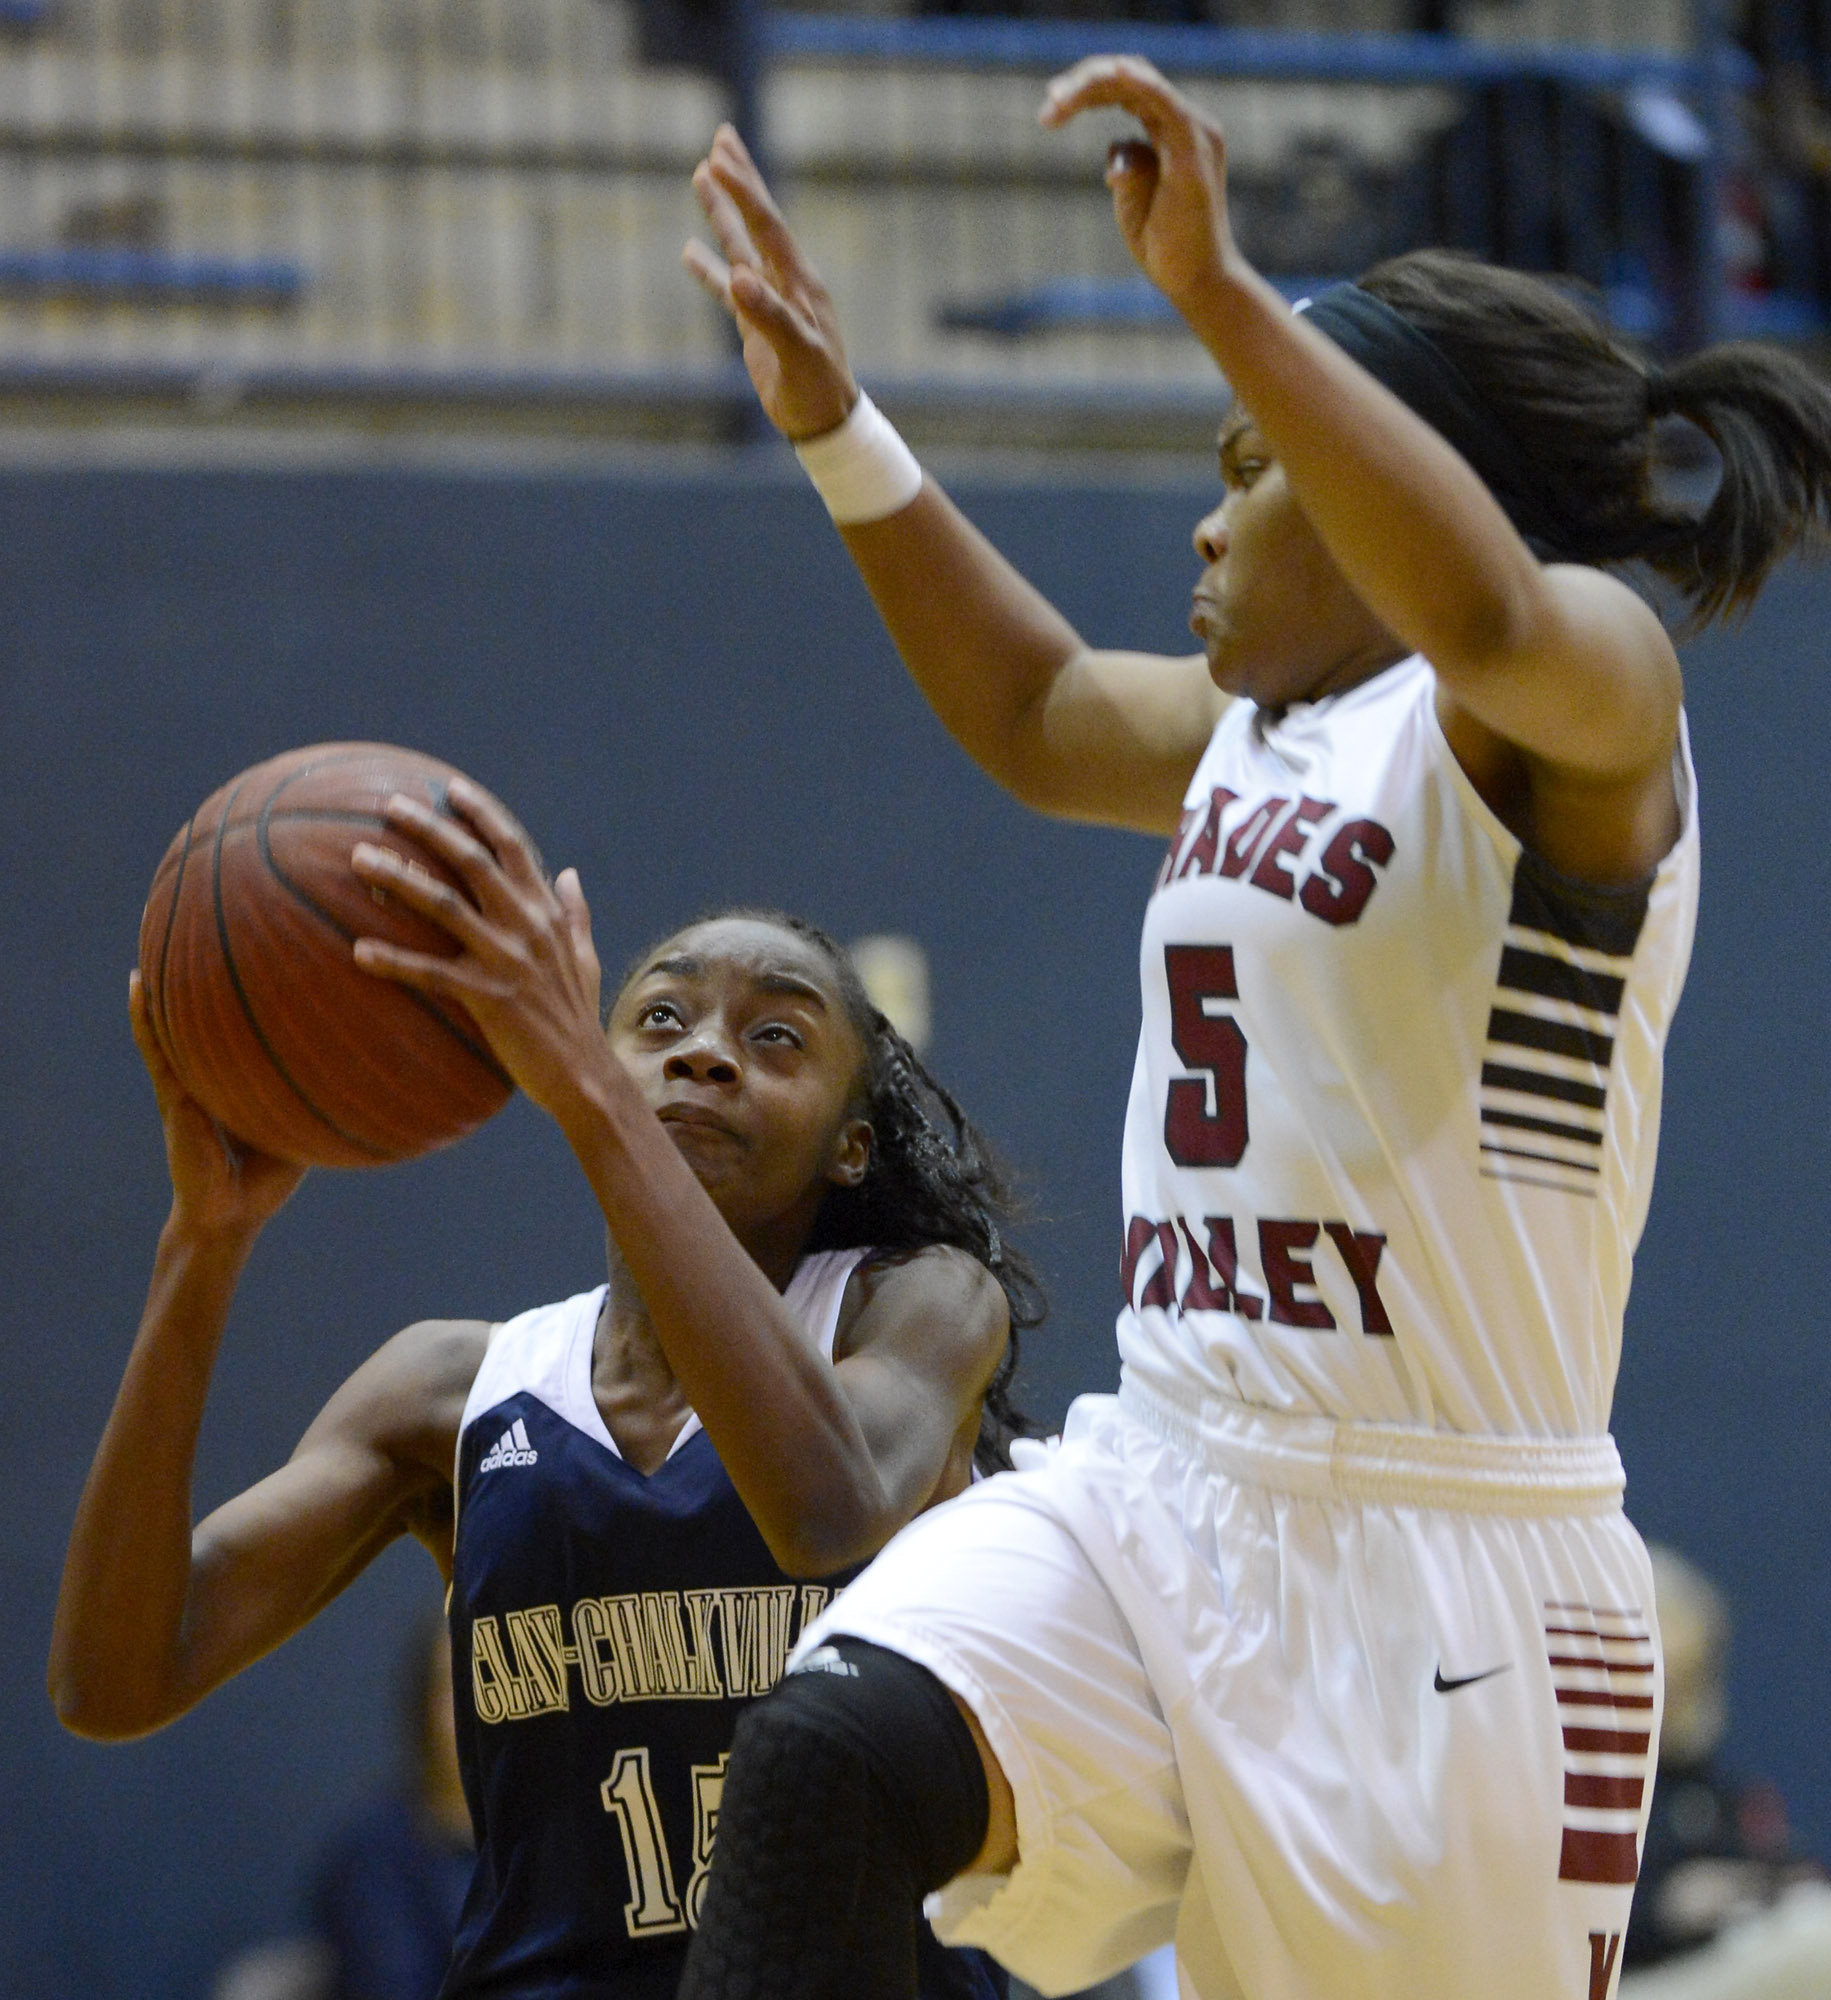 Clay-Chalkville graduate signs on to be Lady Tiger